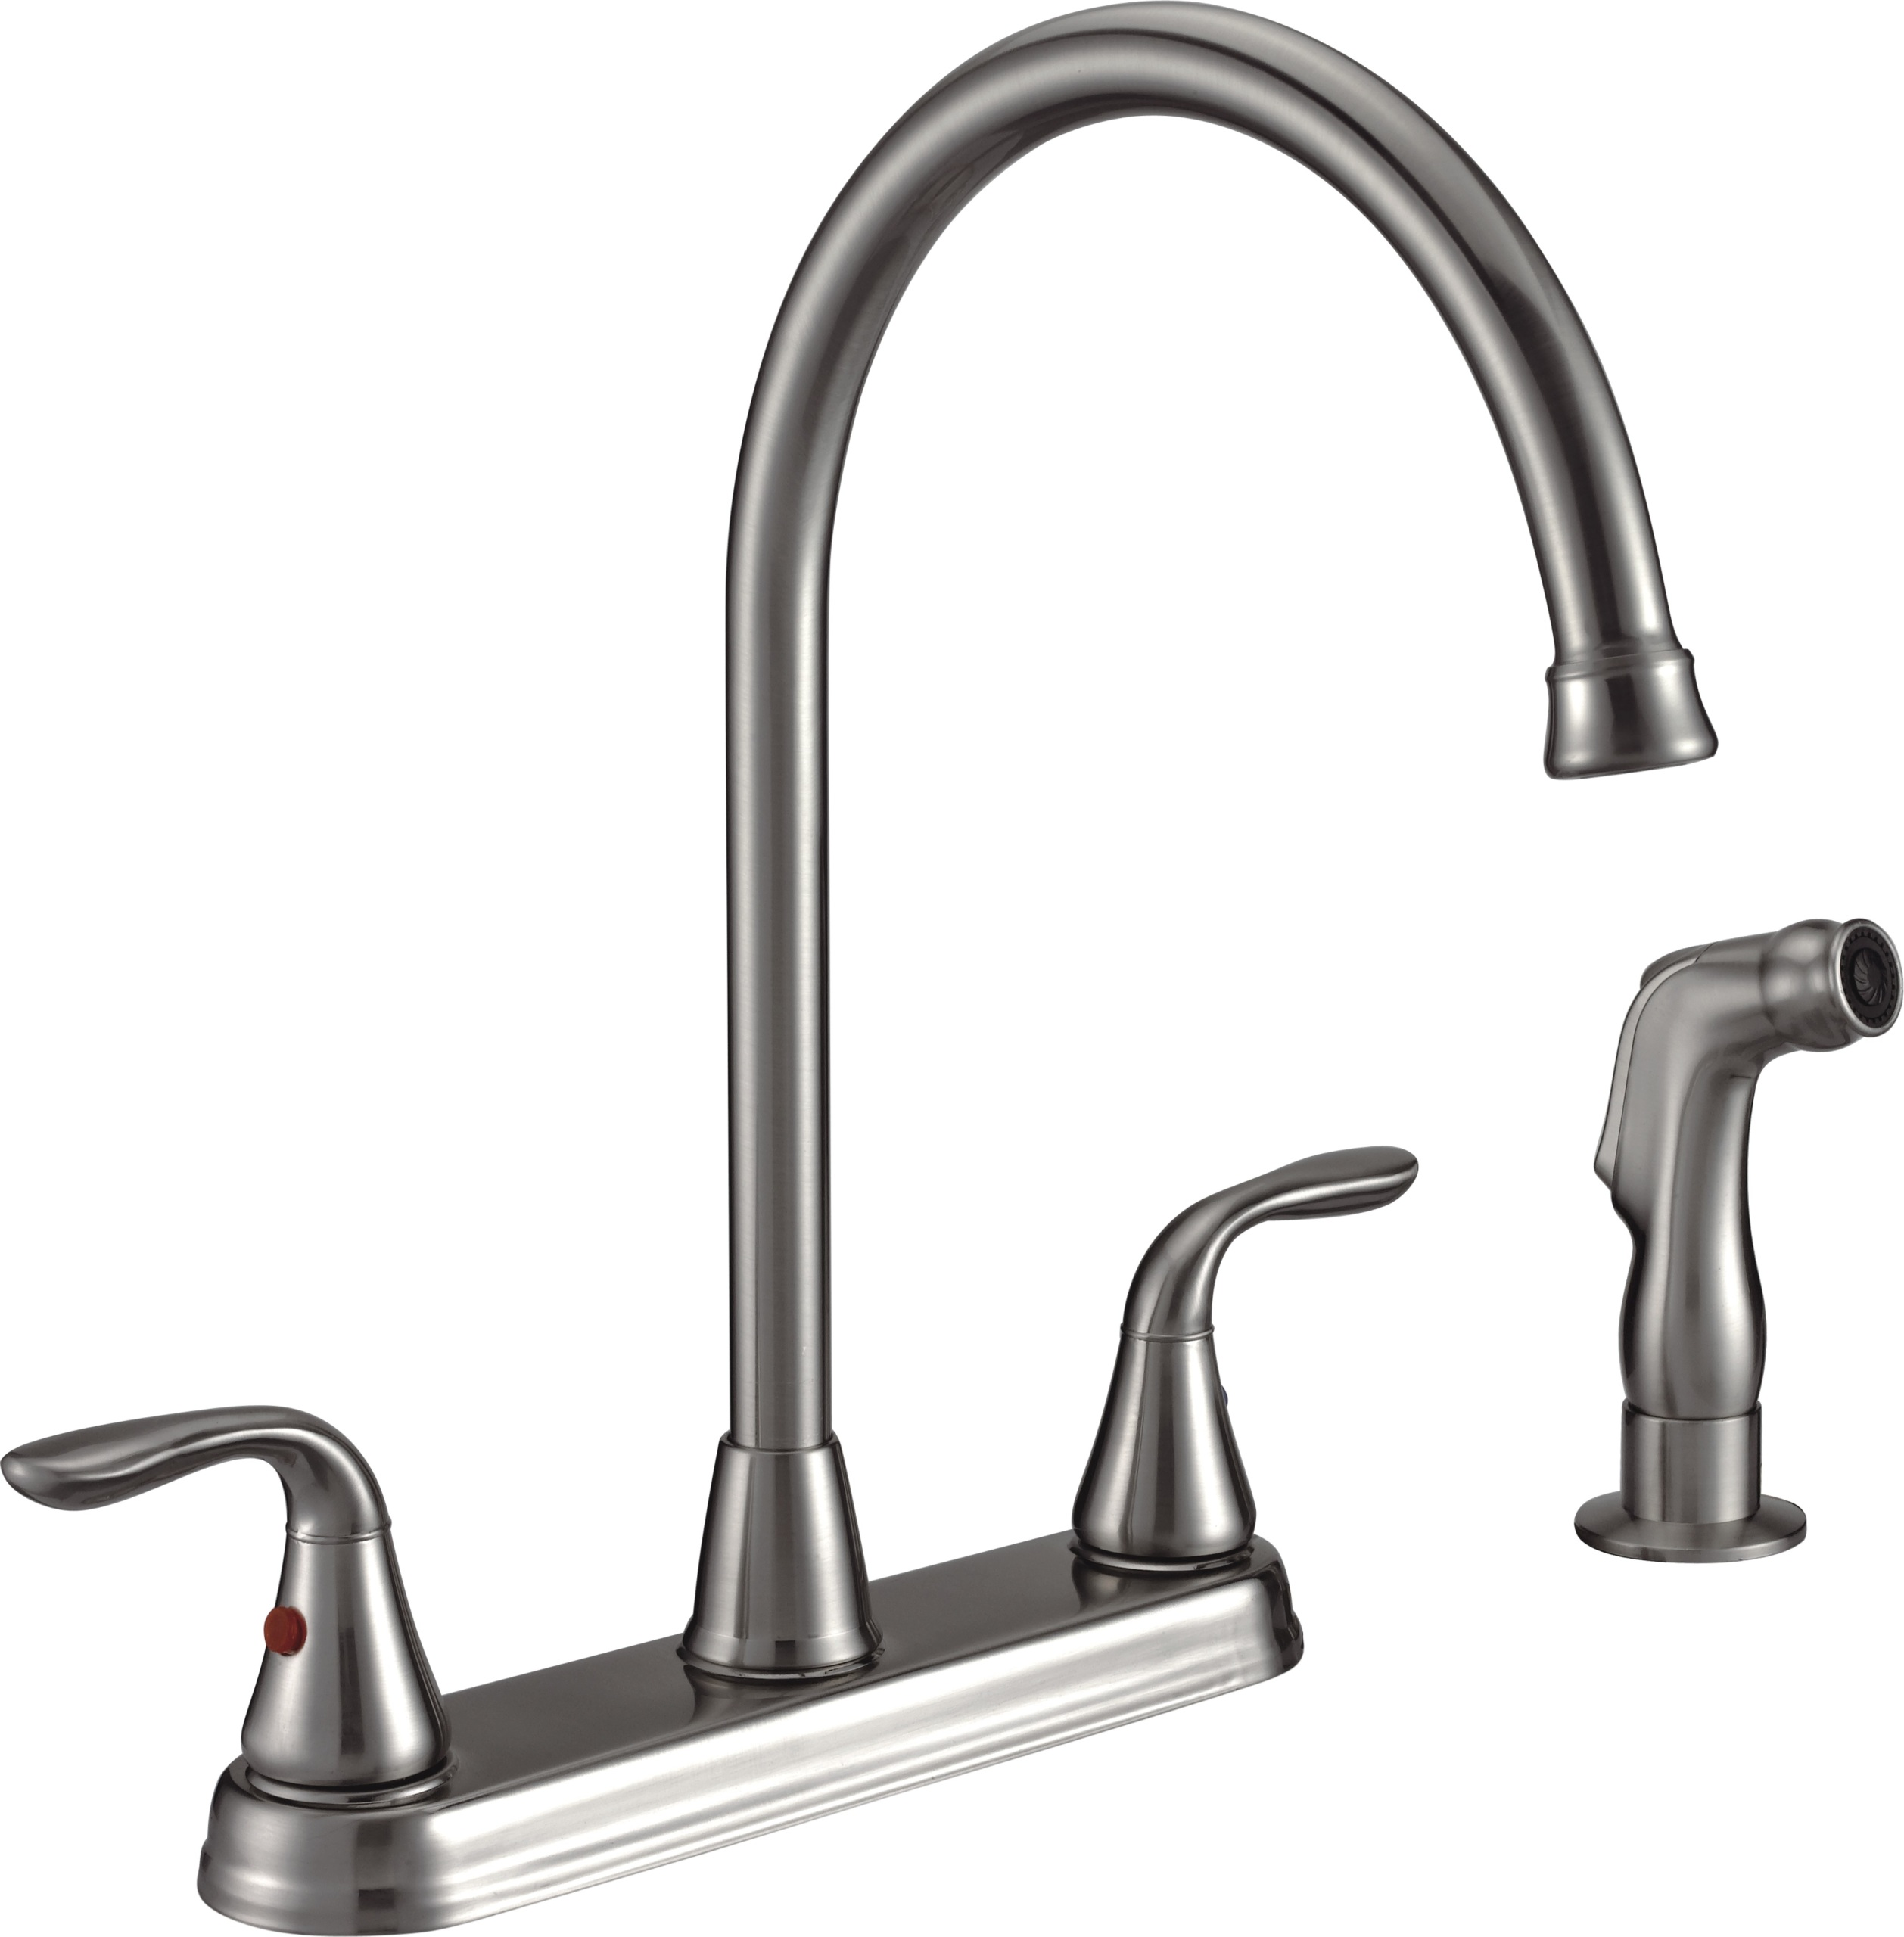 Freendo Two Handle High Arc Kitchen Faucet with Side Spray - Brushed ...